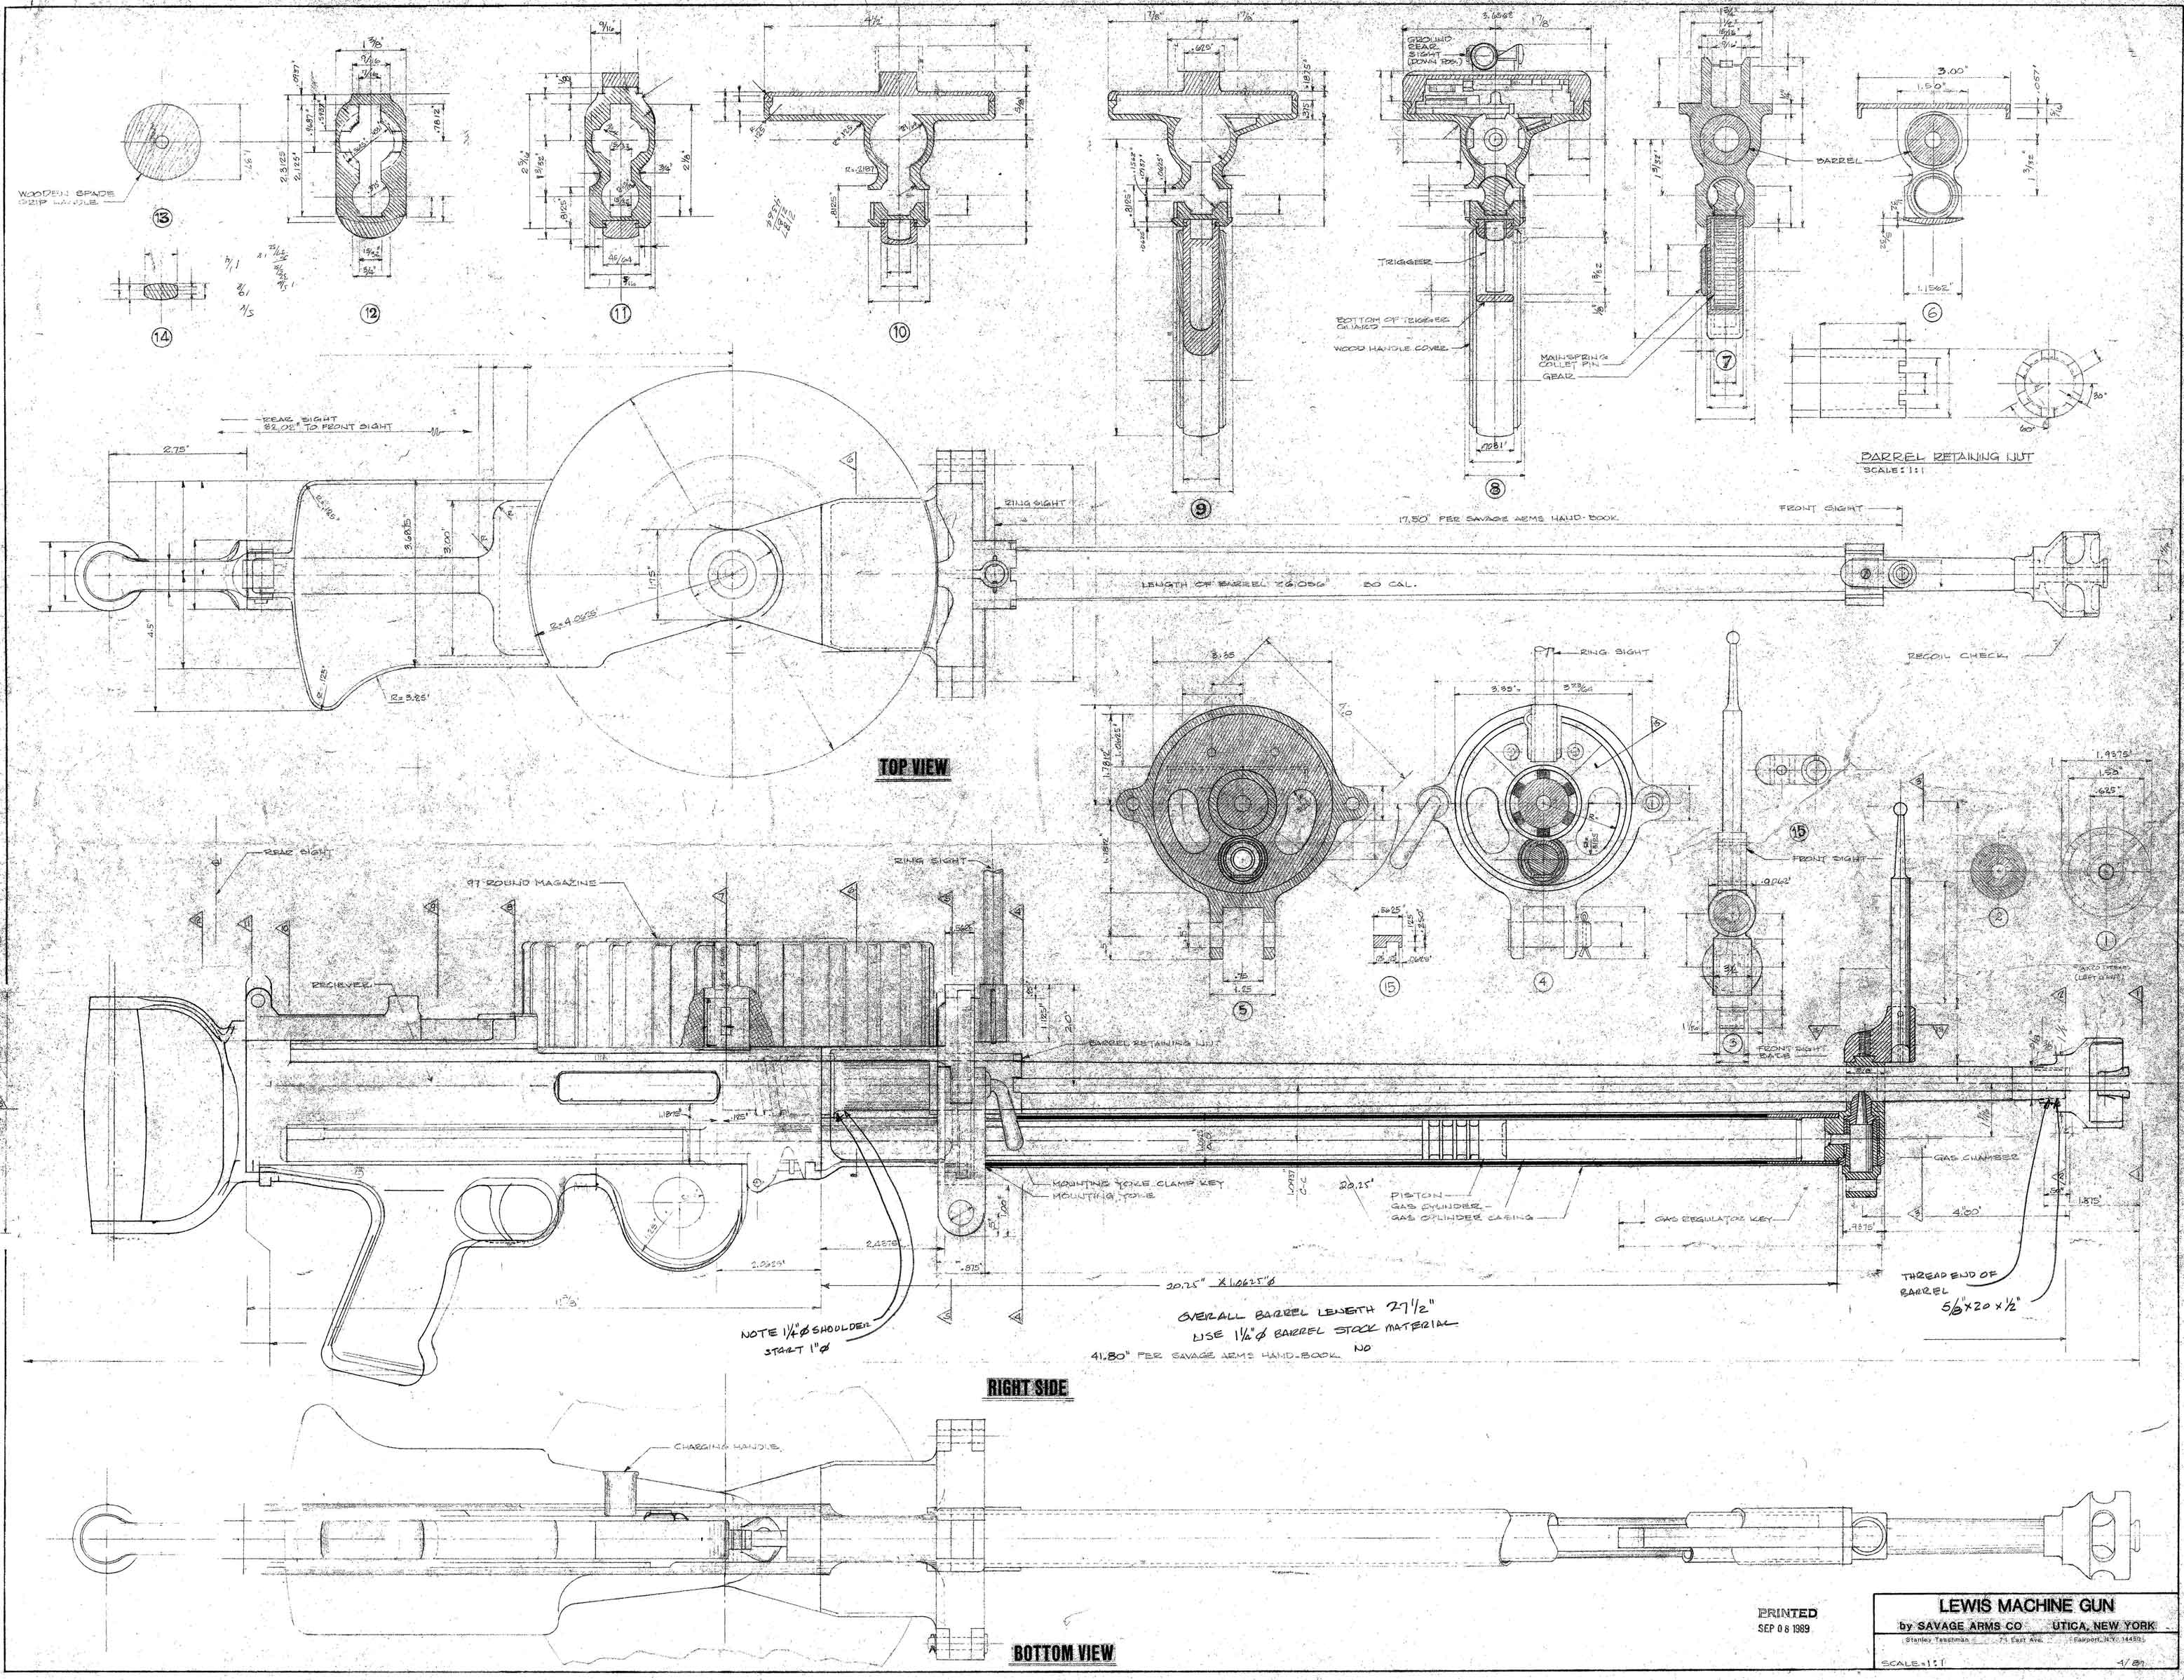 Lewis machine gun blueprint